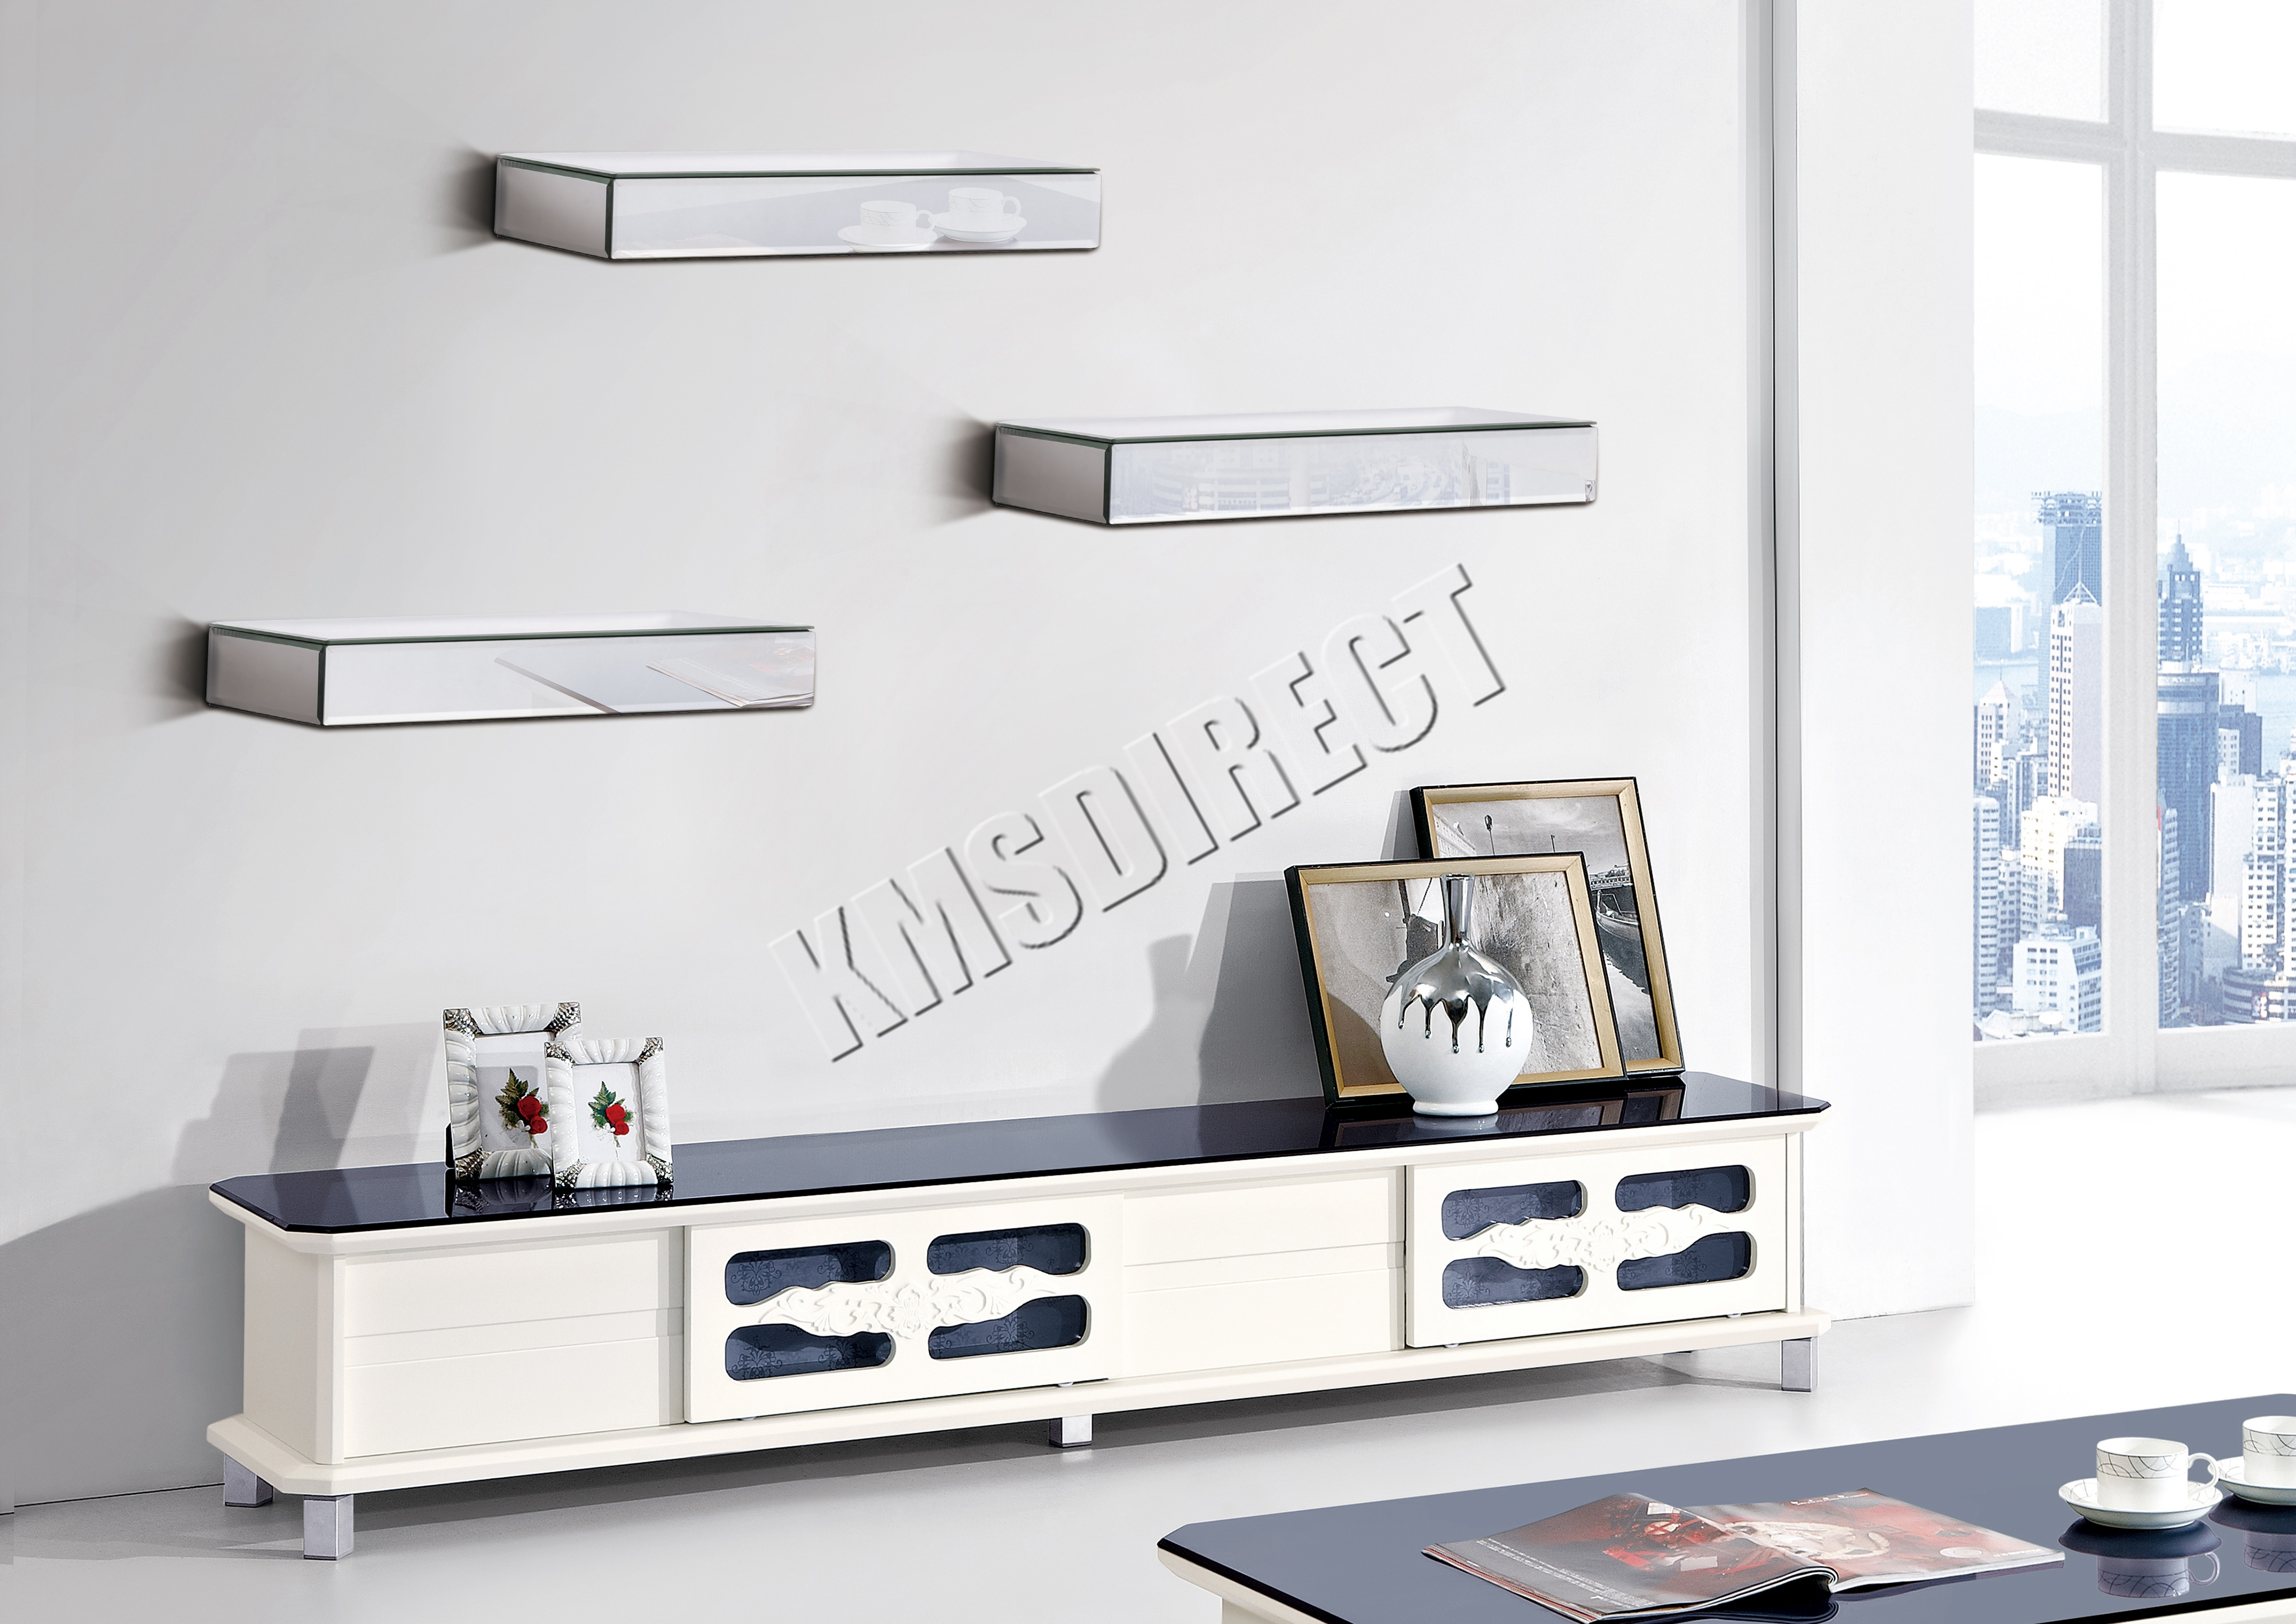 Sentinel FoxHunter Bevelled Mirrored Furniture Glass Floating Shelves 3 Set  Wall Storage